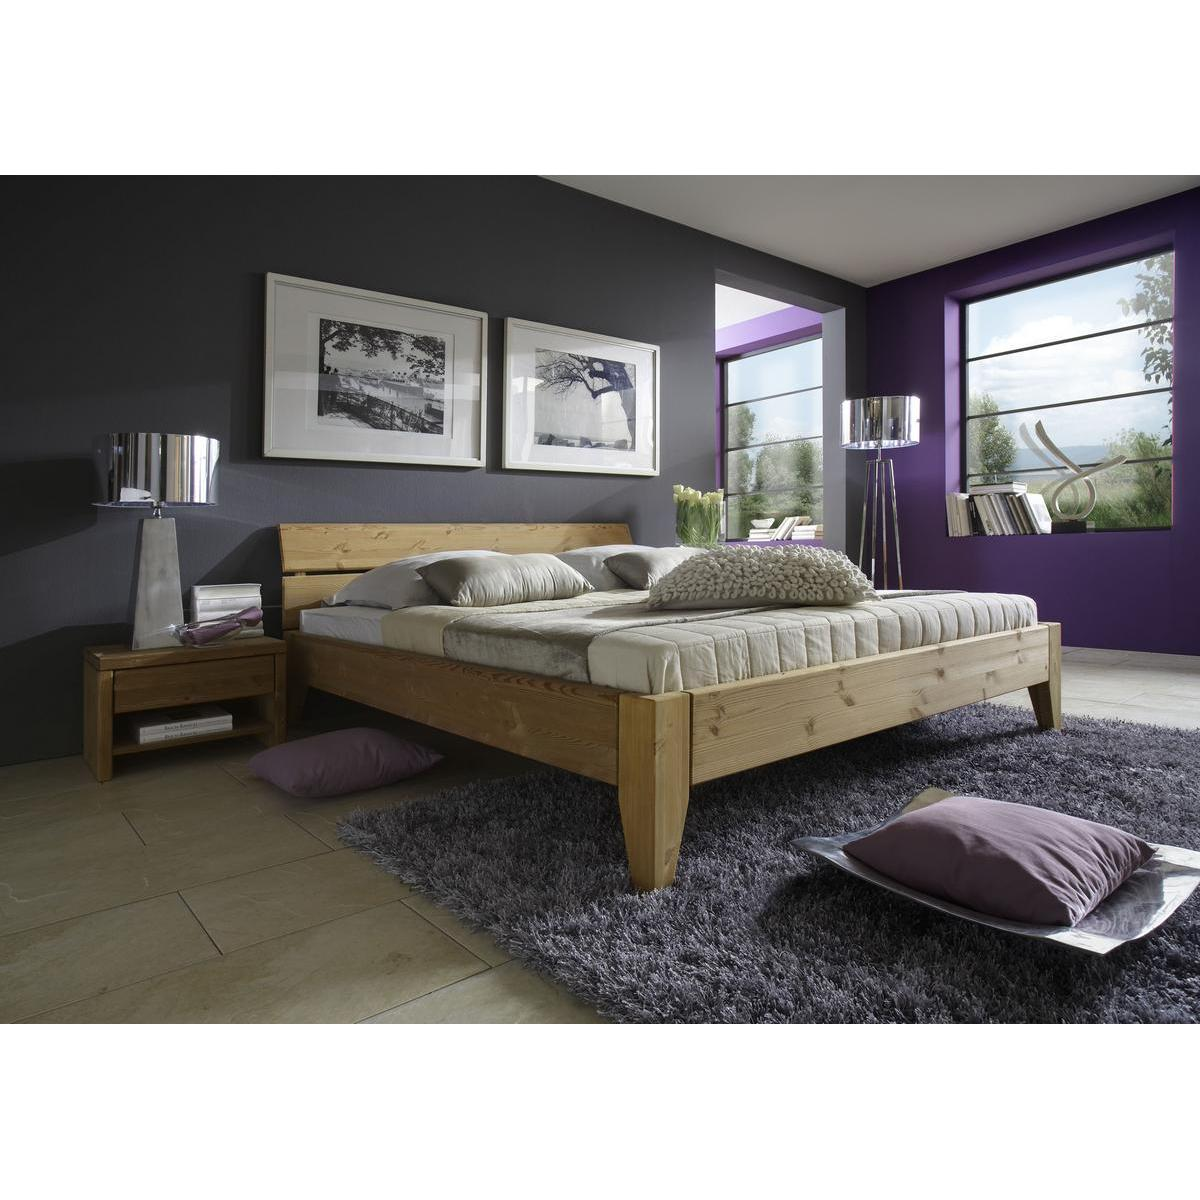 massivholz bett 100x200 easy sleep kiefer massiv gelaugt ge lt 9210 92 5. Black Bedroom Furniture Sets. Home Design Ideas